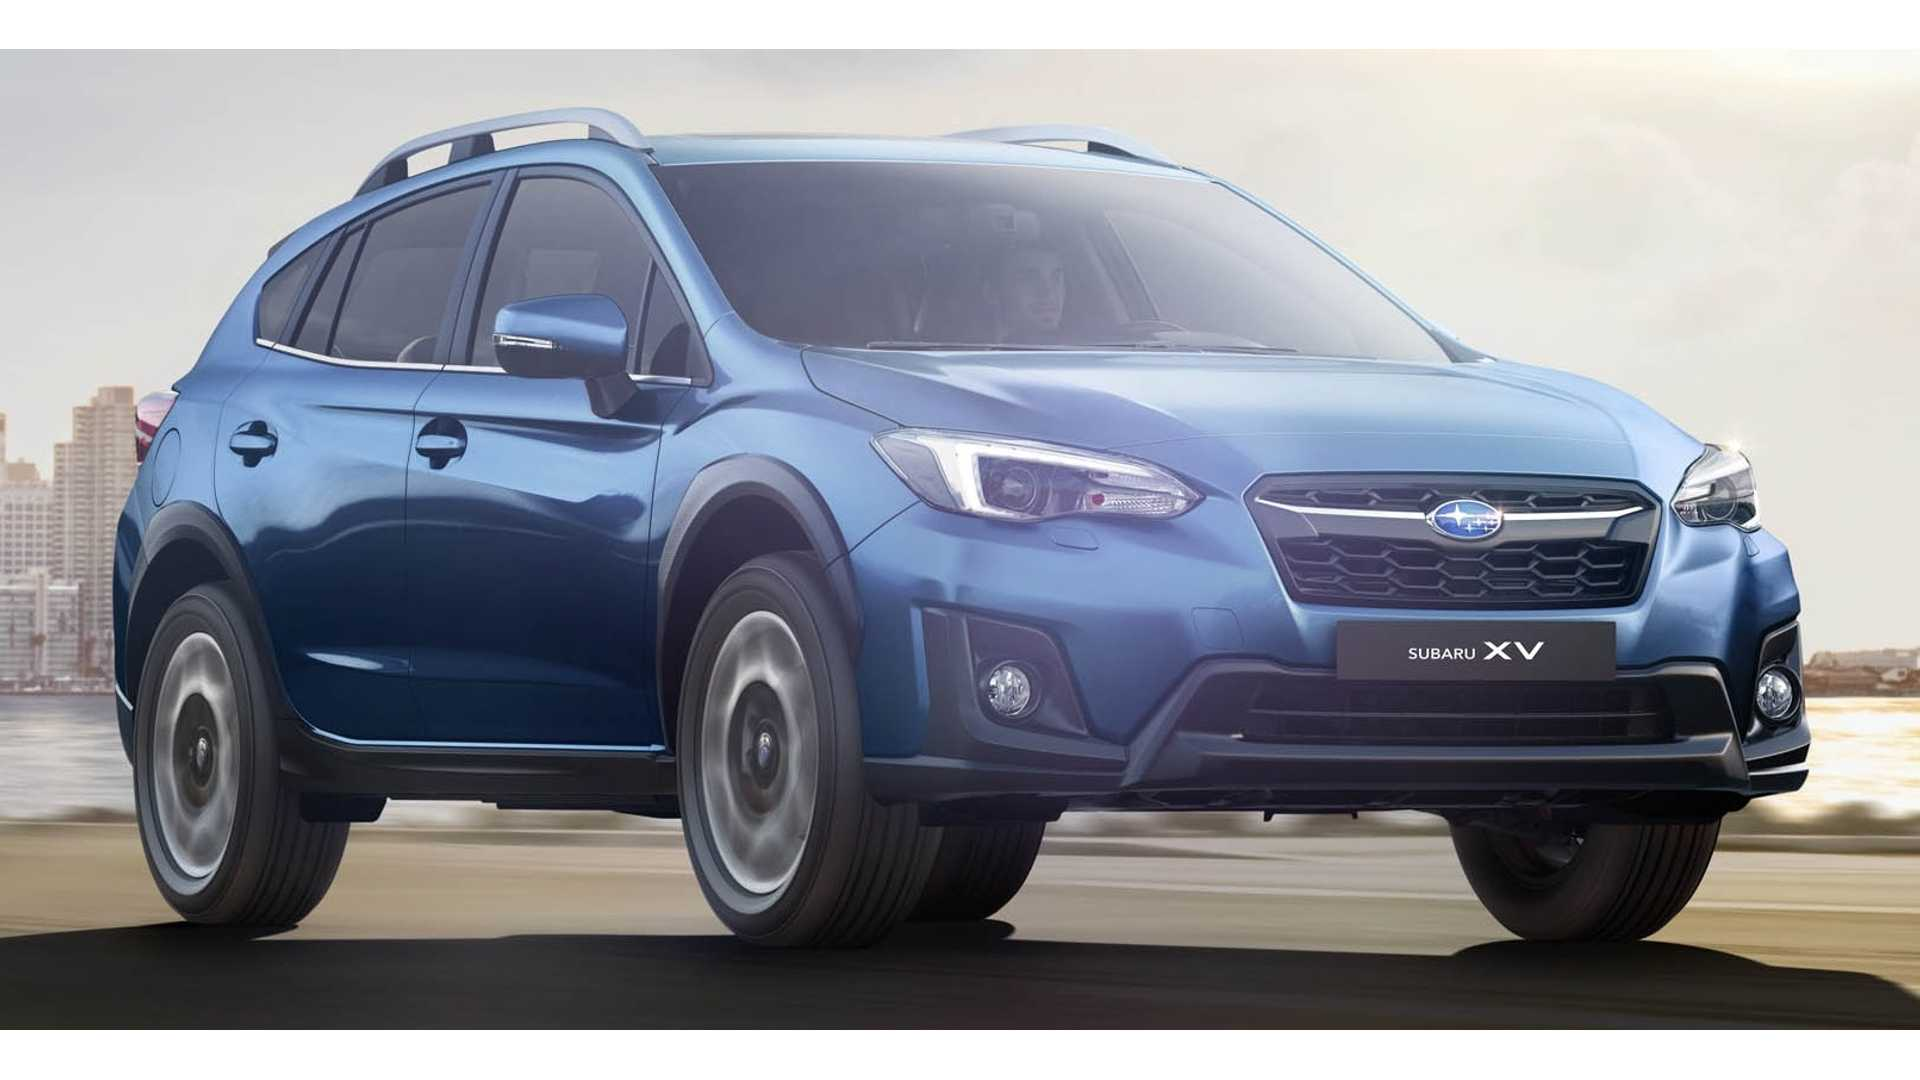 Subaru Phev To Debut Next Year Bev By 2021 As Electrification Leads In R D Push